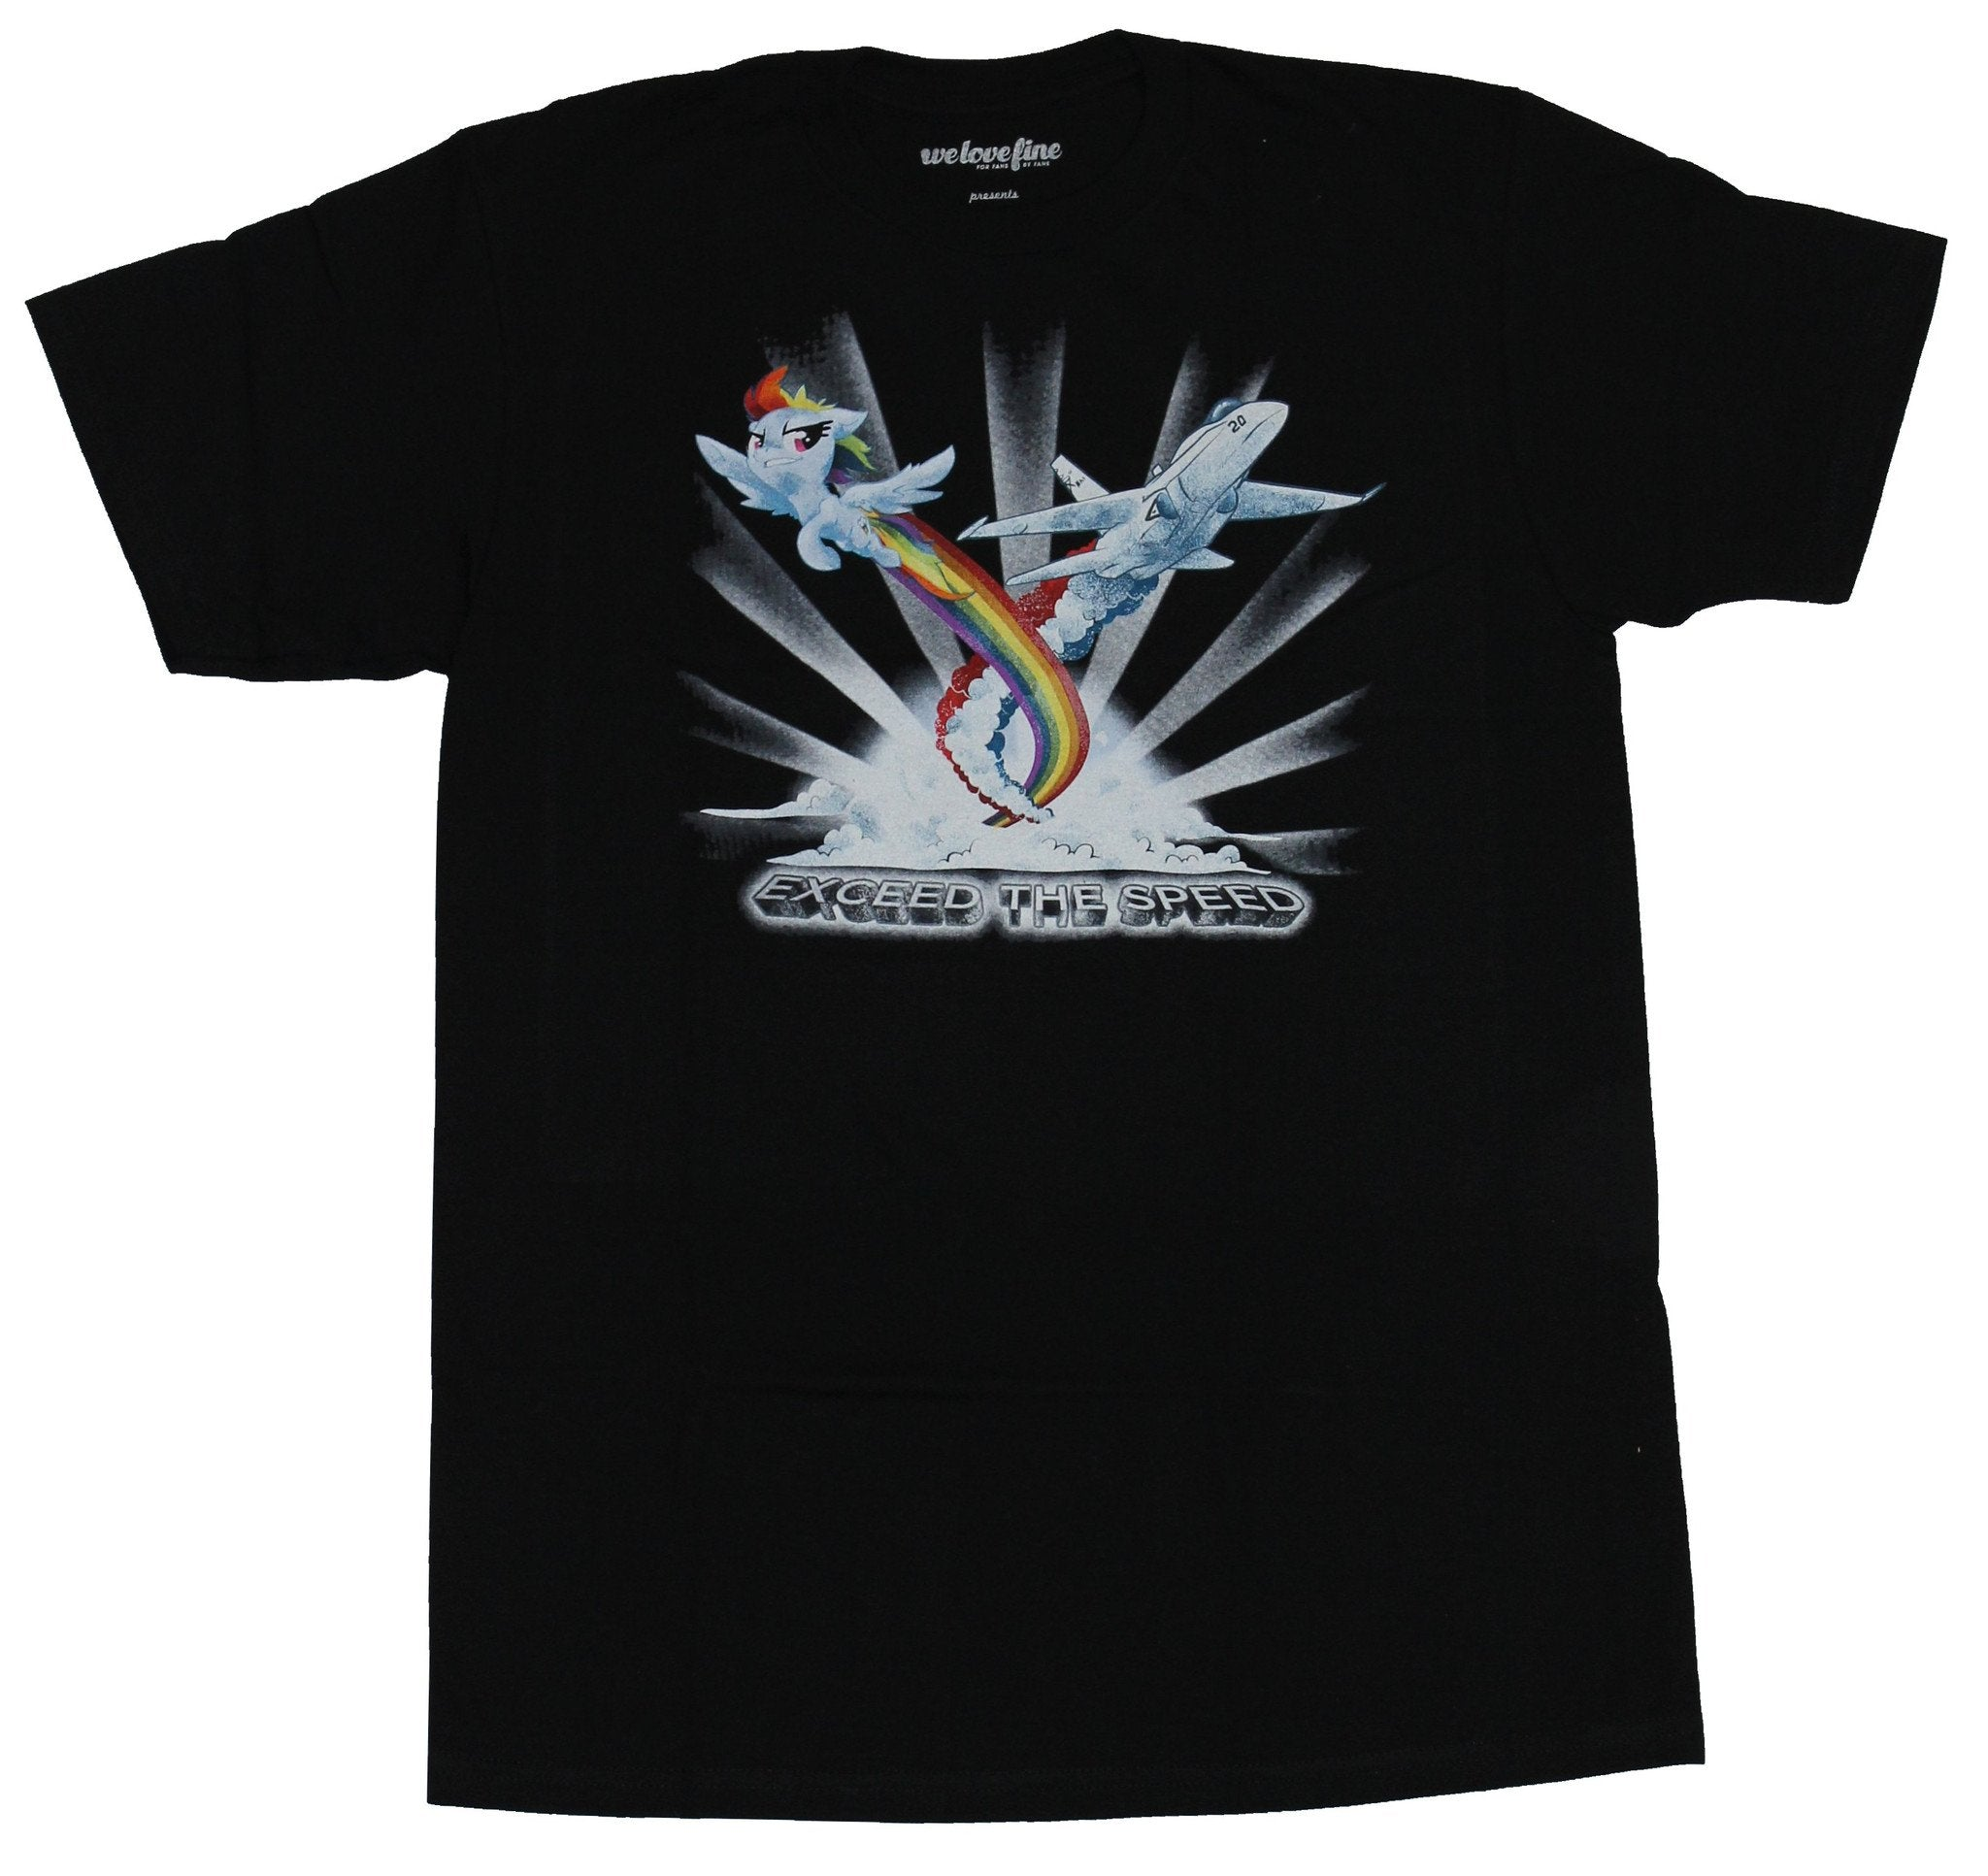 My Little Pony Mens T-Shirt  - Rainbow Dash Exceed The Speed Image